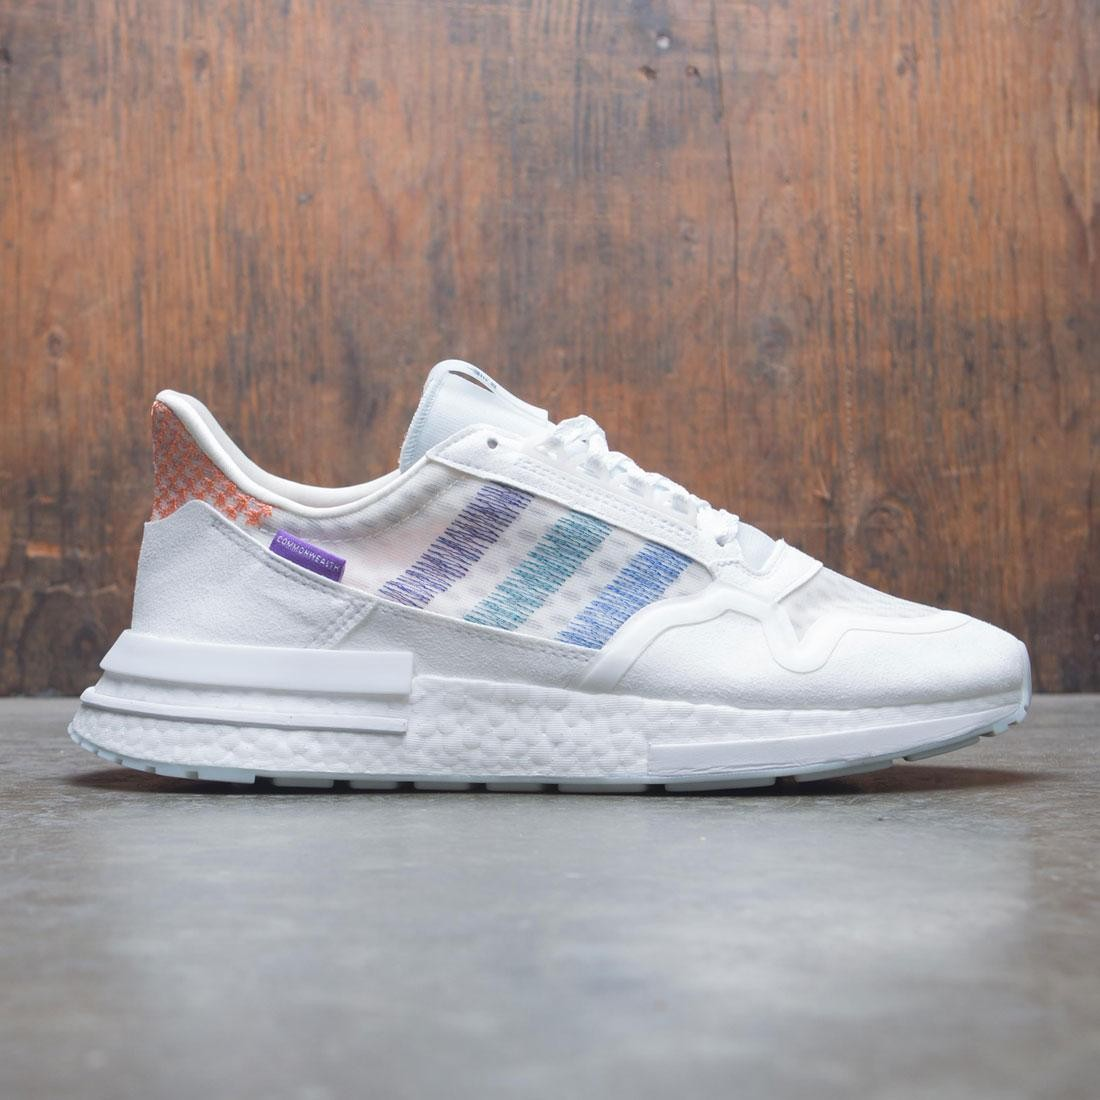 finest selection 3f3ed 18267 Adidas Consortium x Commonwealth Men ZX 500 RM (white / orchid tint)